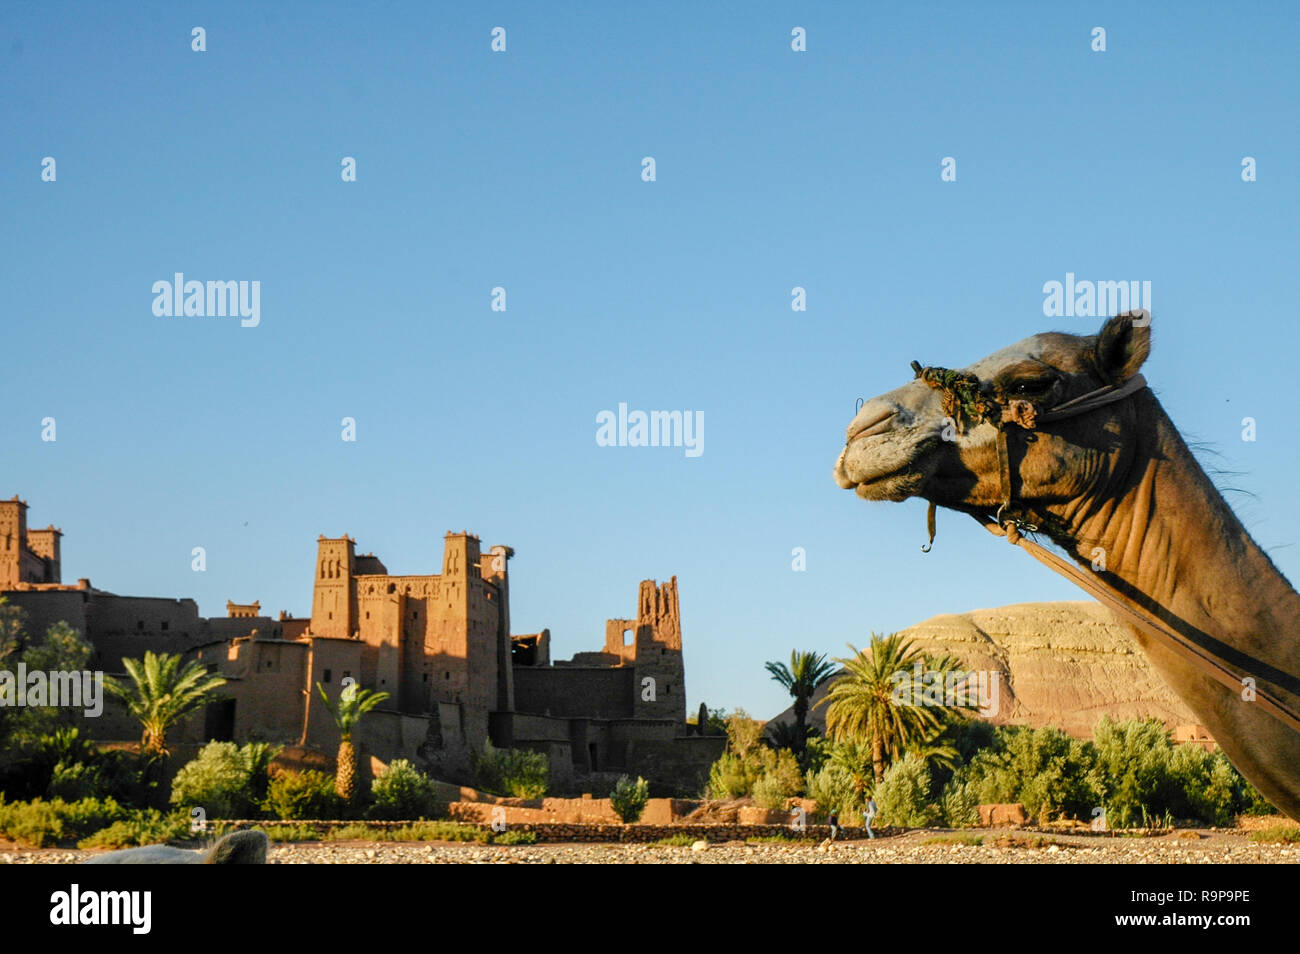 the famous casbah of Art Benhaddou in Maroc - Stock Image